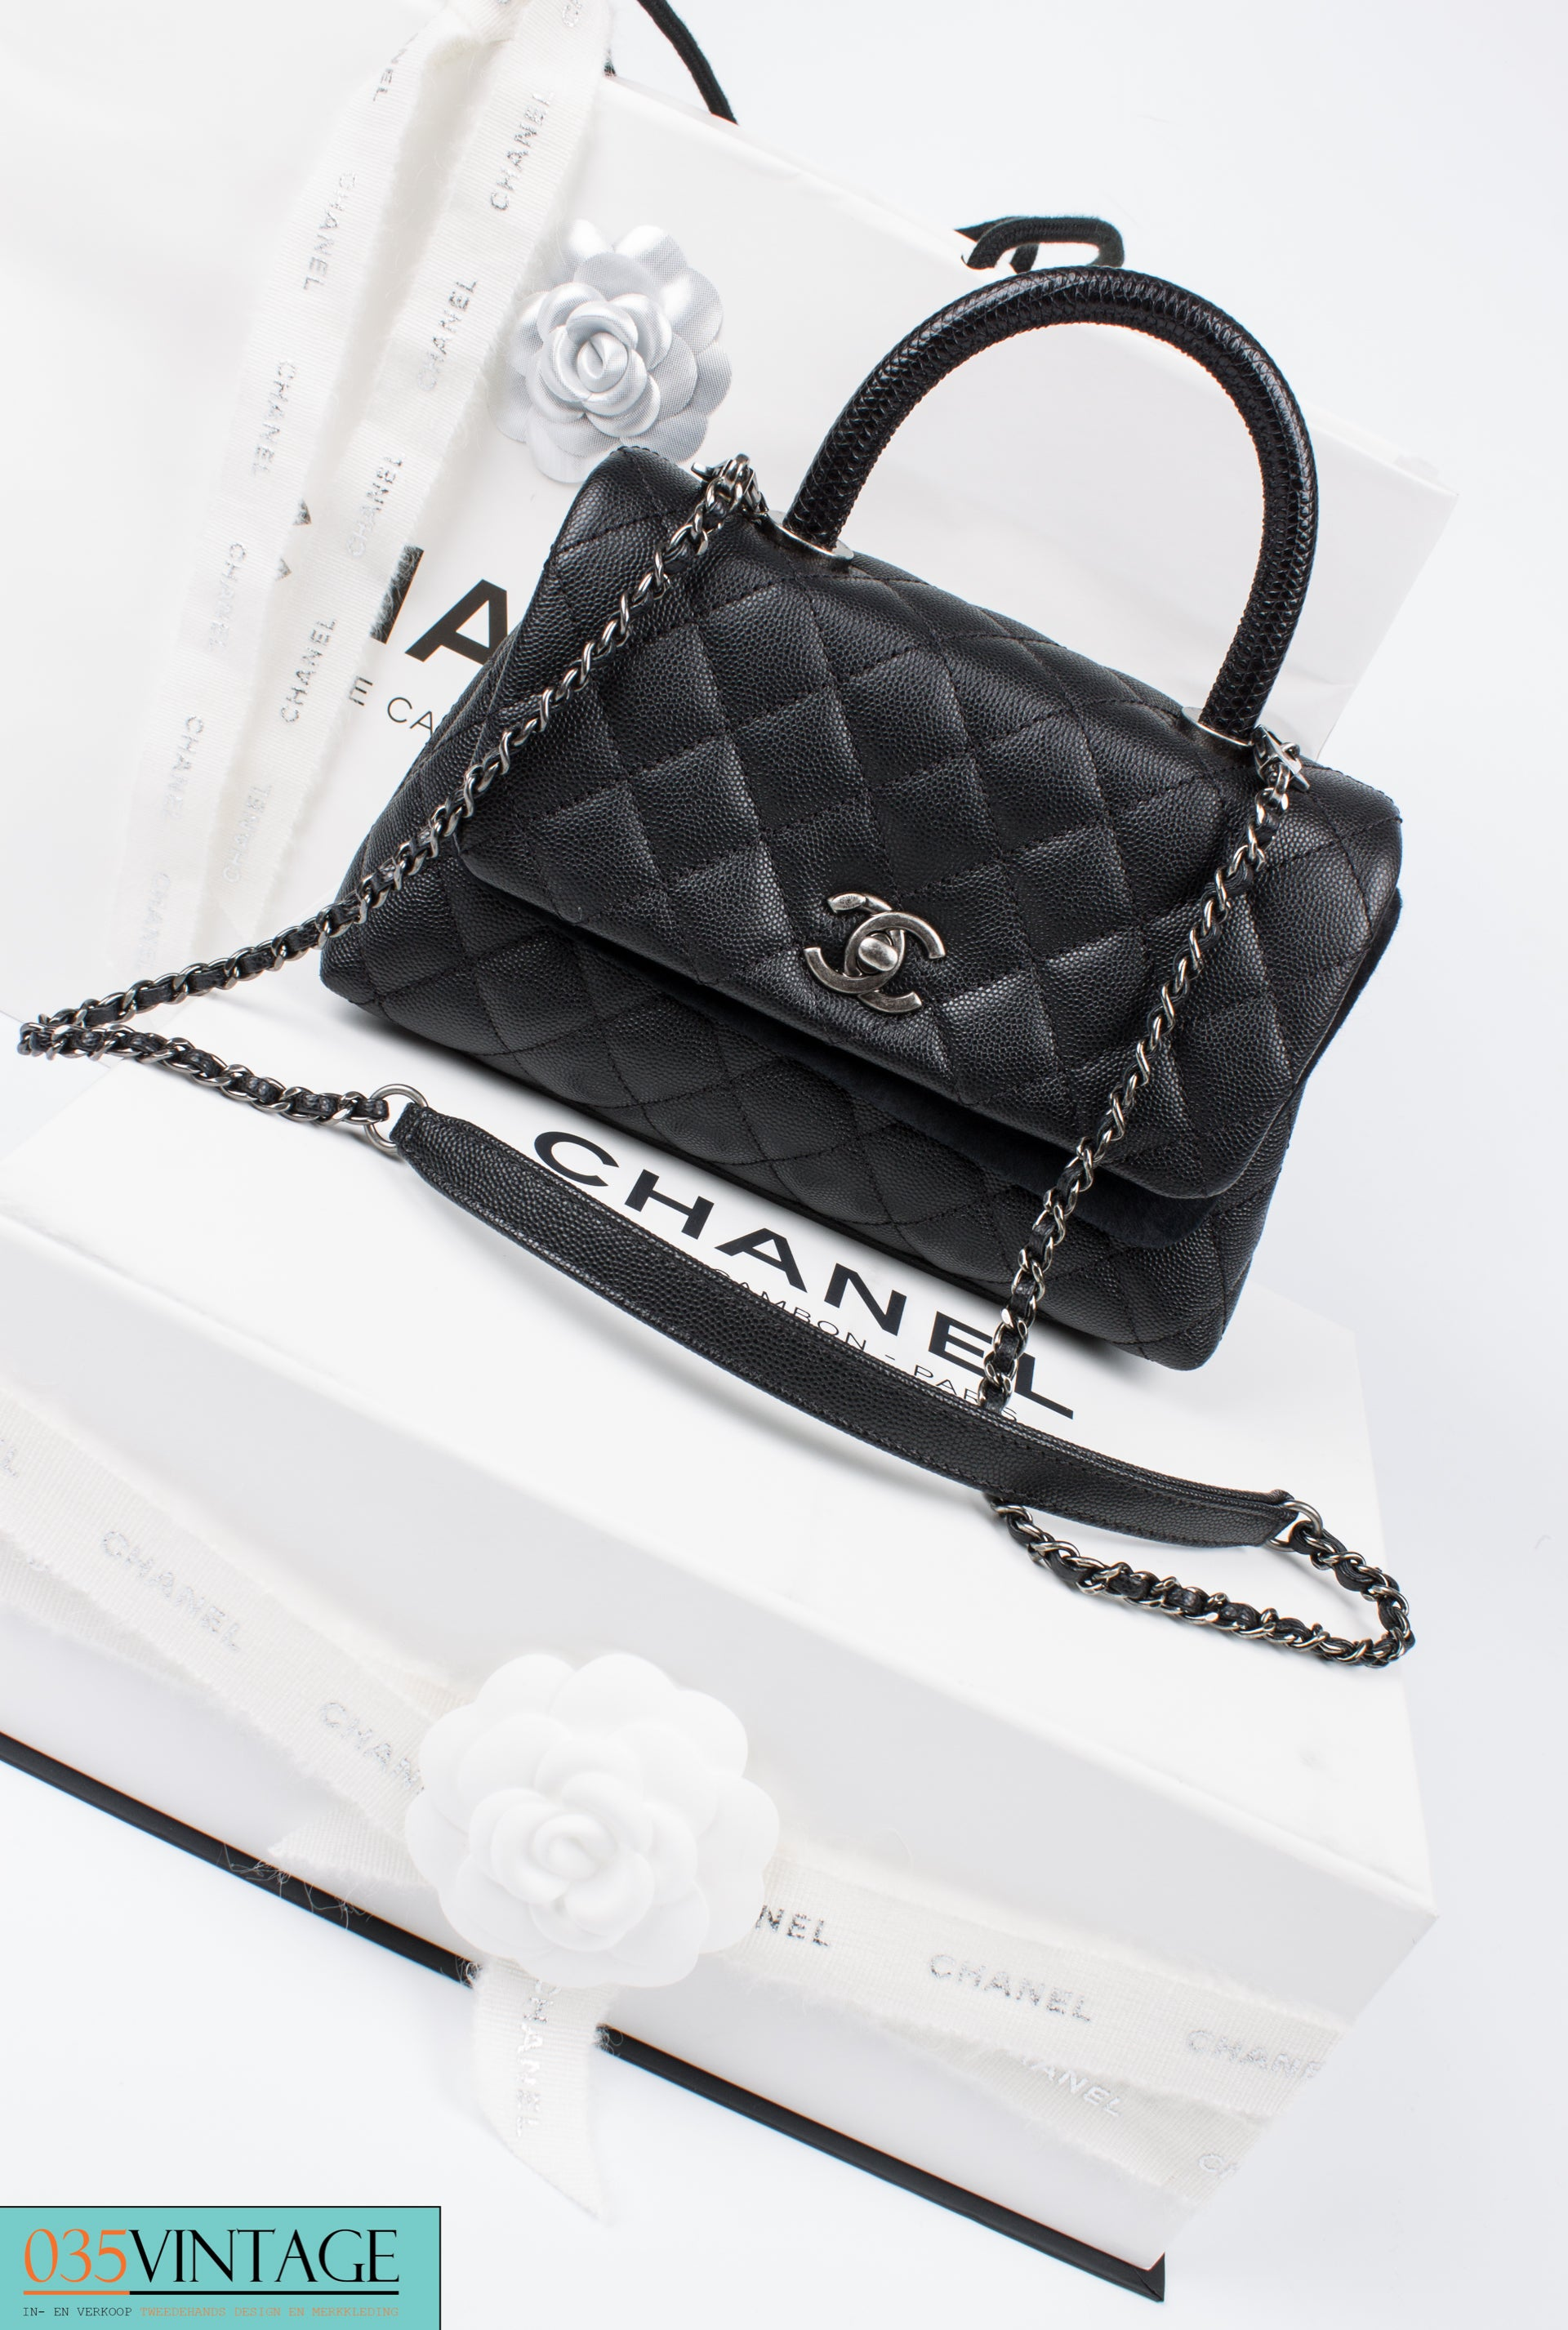 d39f63adafac Chanel Coco Handle Flap Bag Mini Lizard and Caviar Quilted Leather - black  at 1stdibs